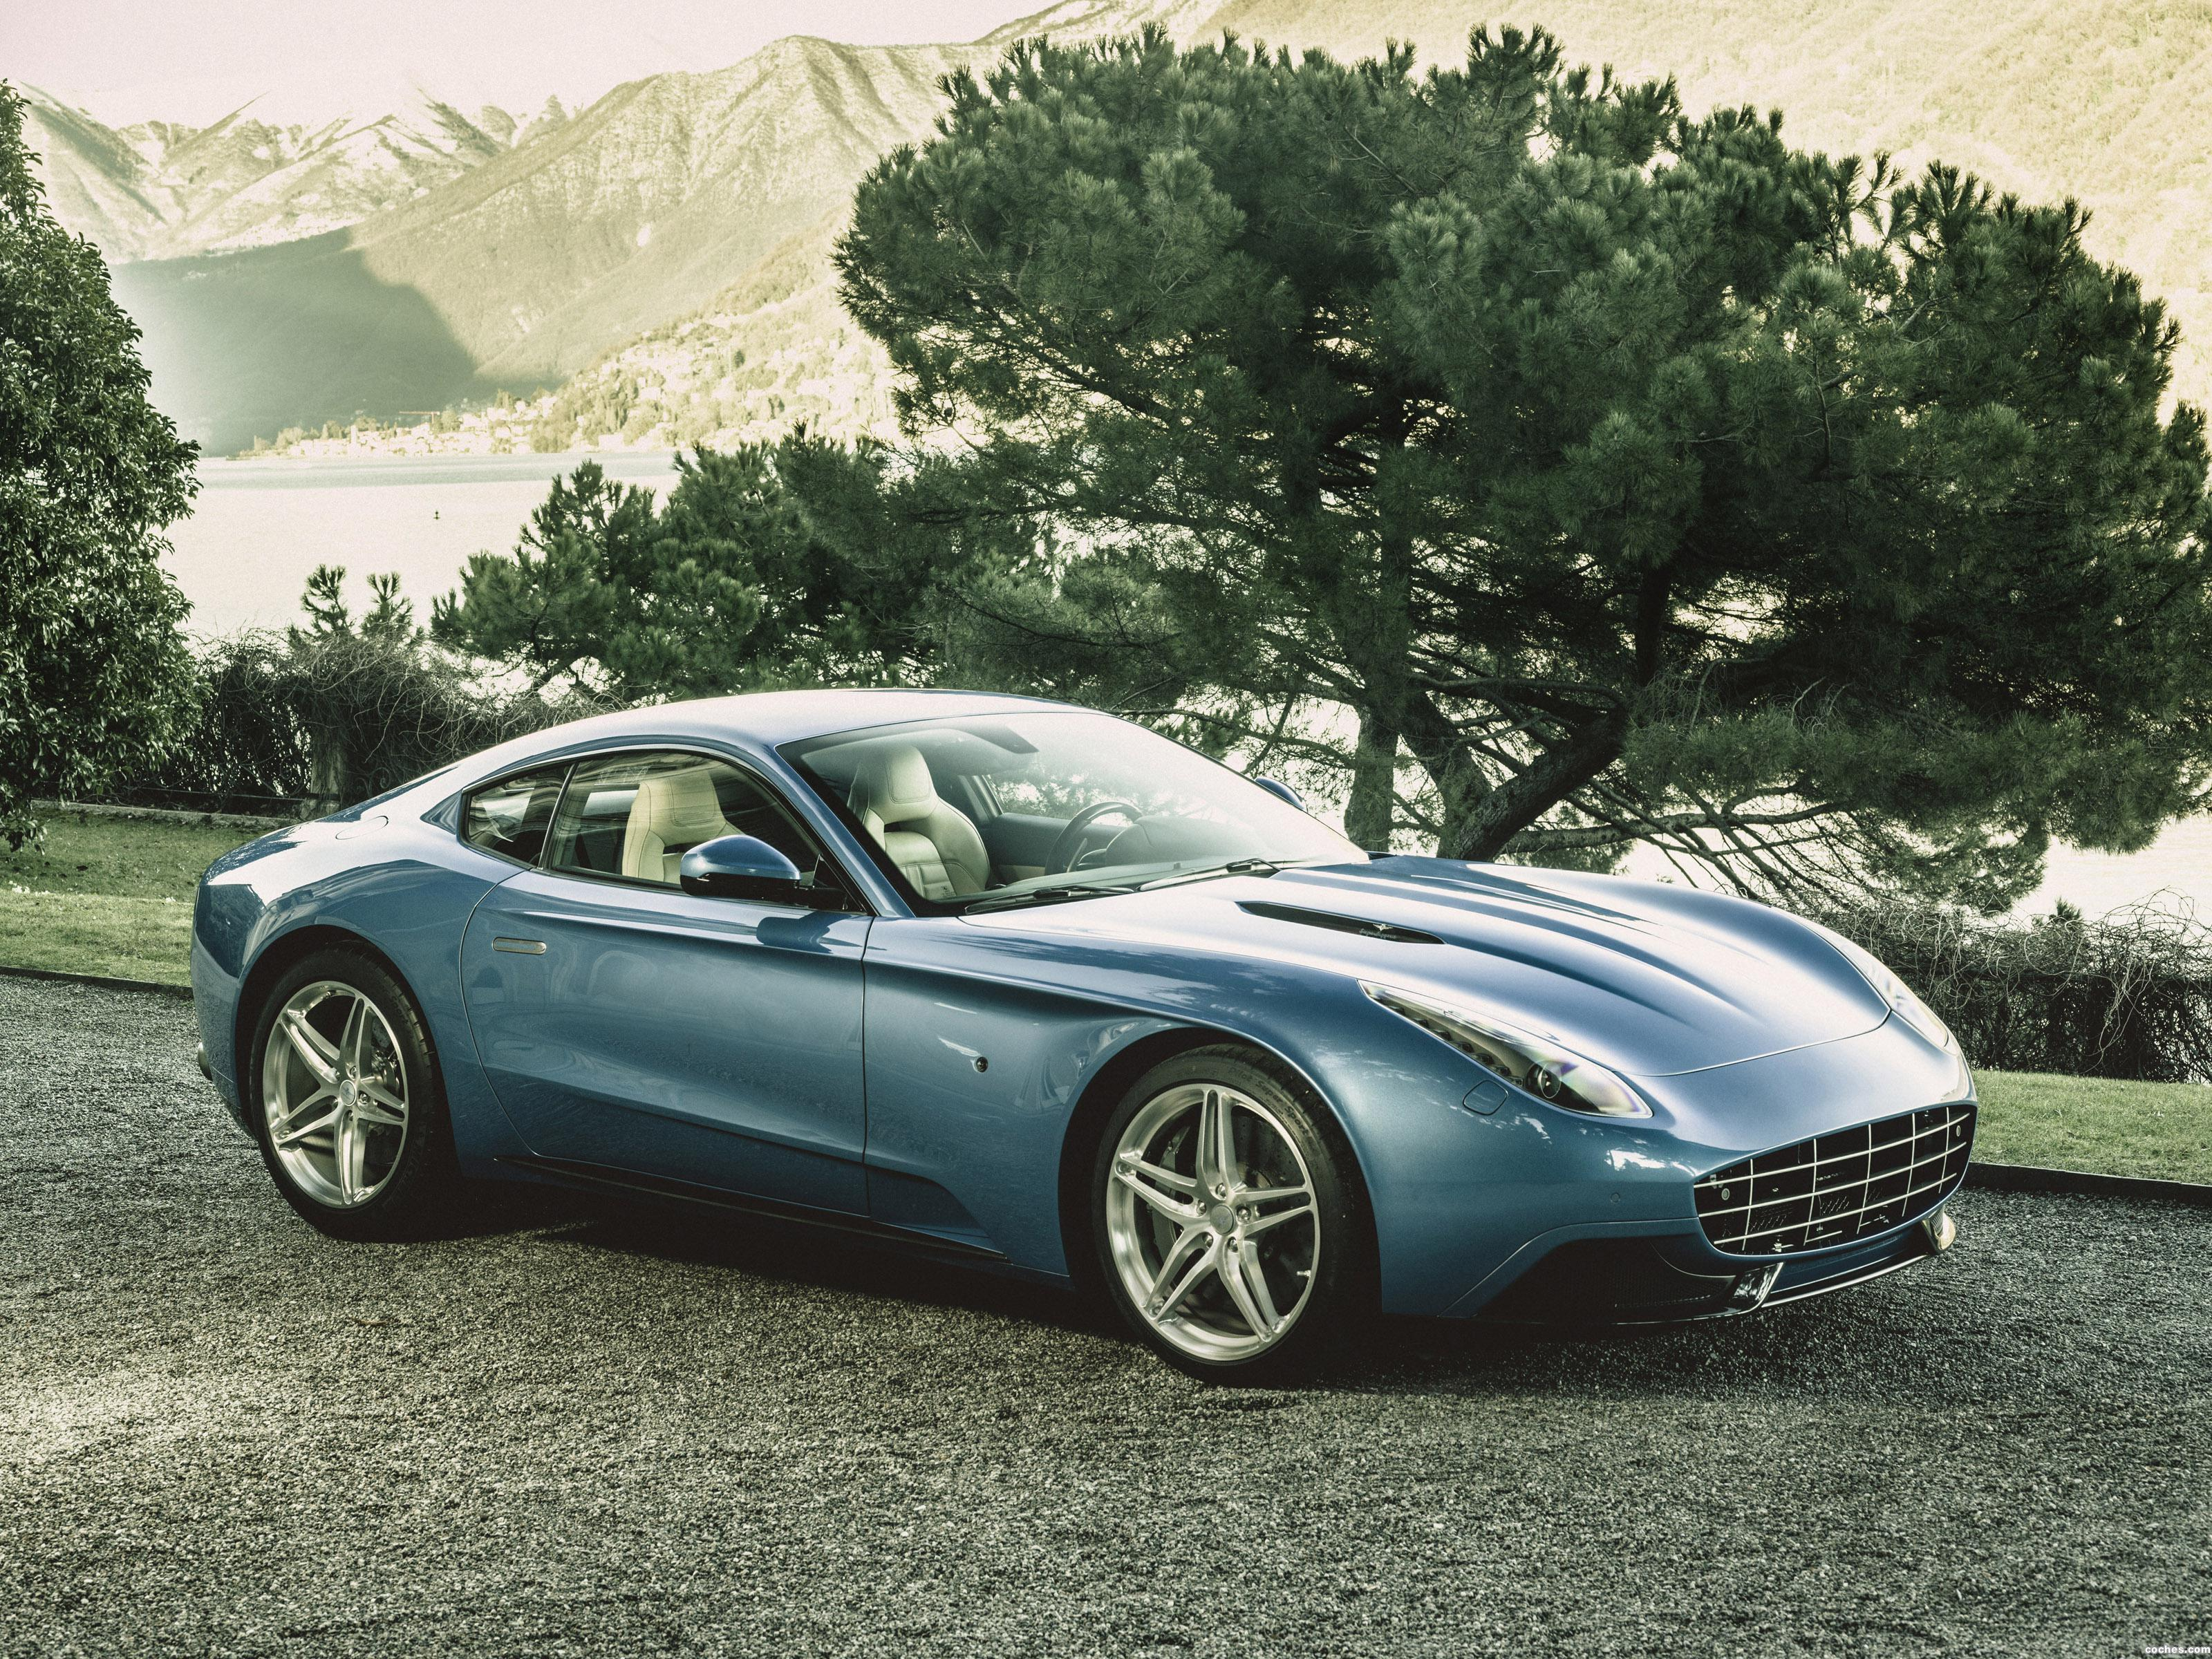 Foto 0 de Touring Superleggera Berlinetta Lusso 2015